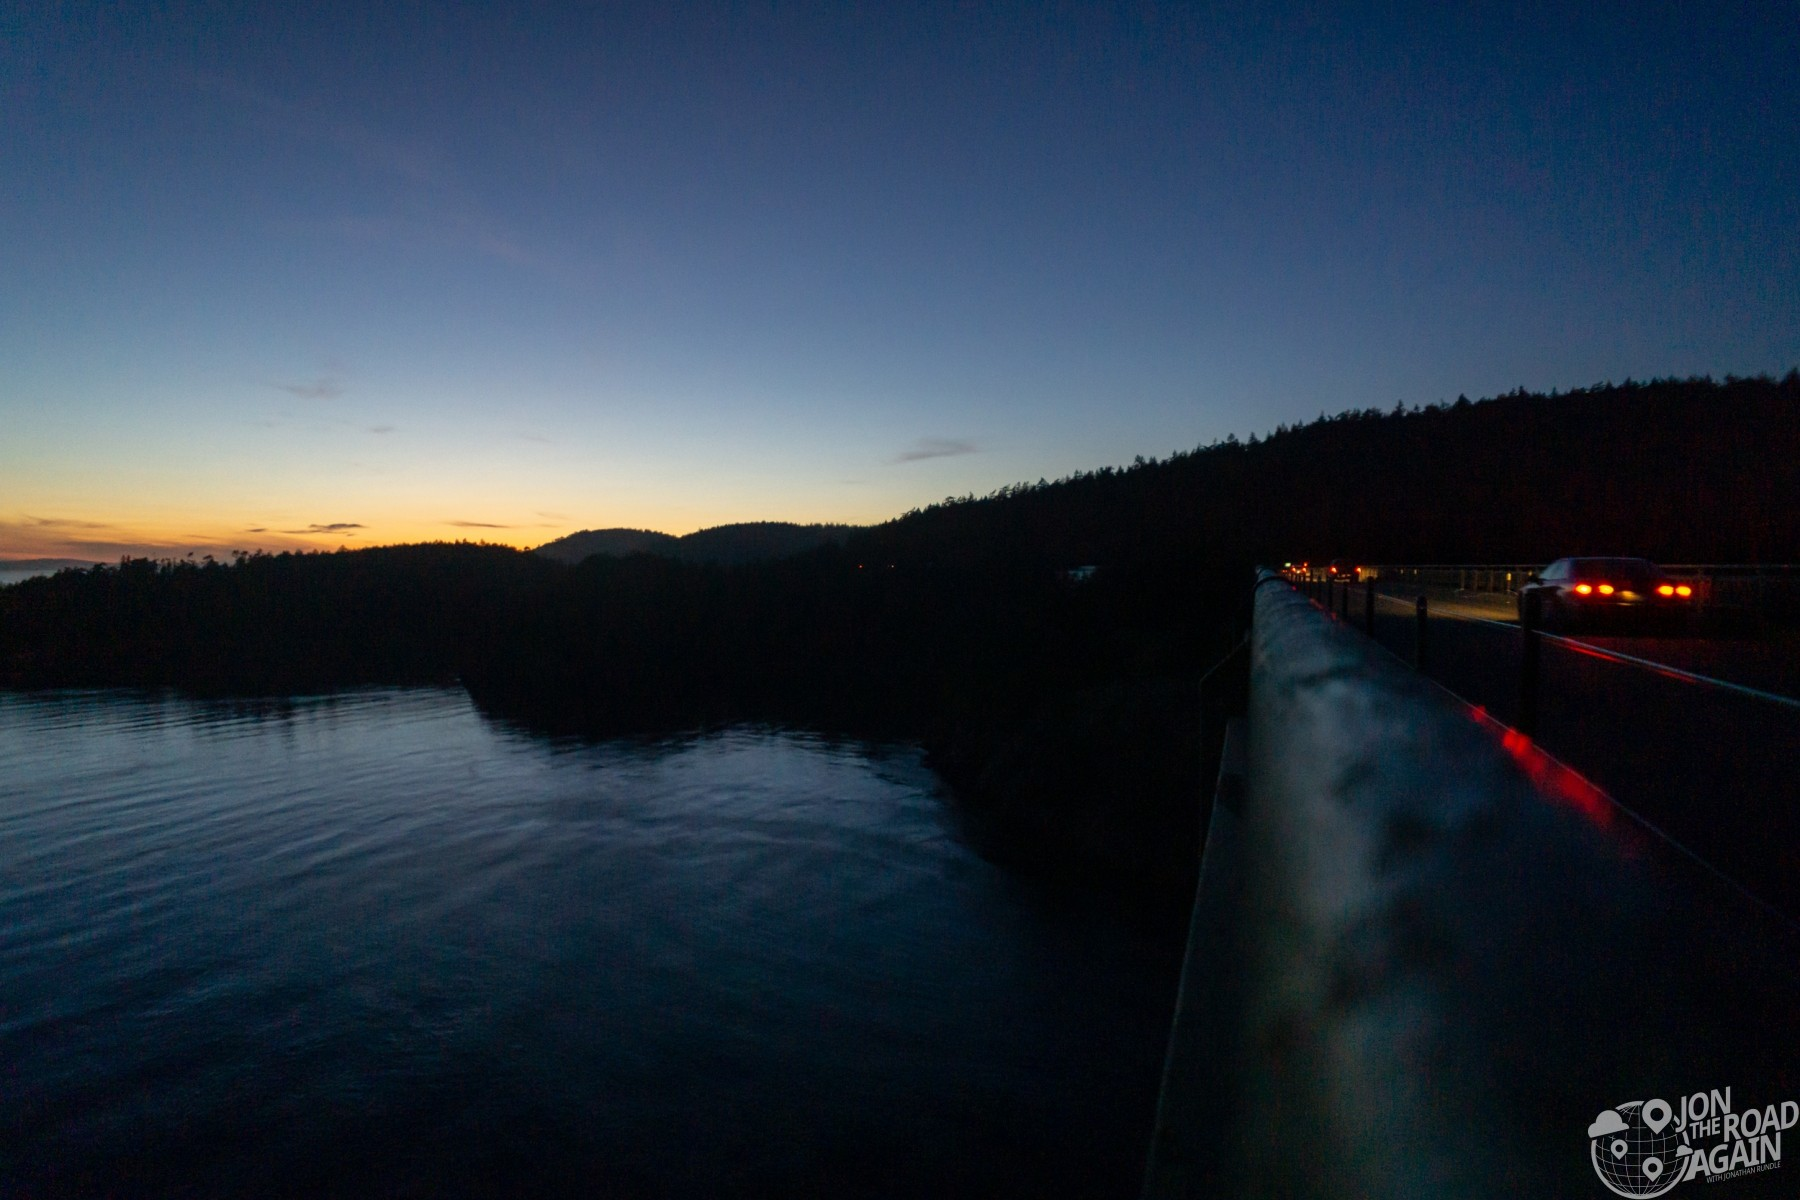 Sunset at Deception Pass